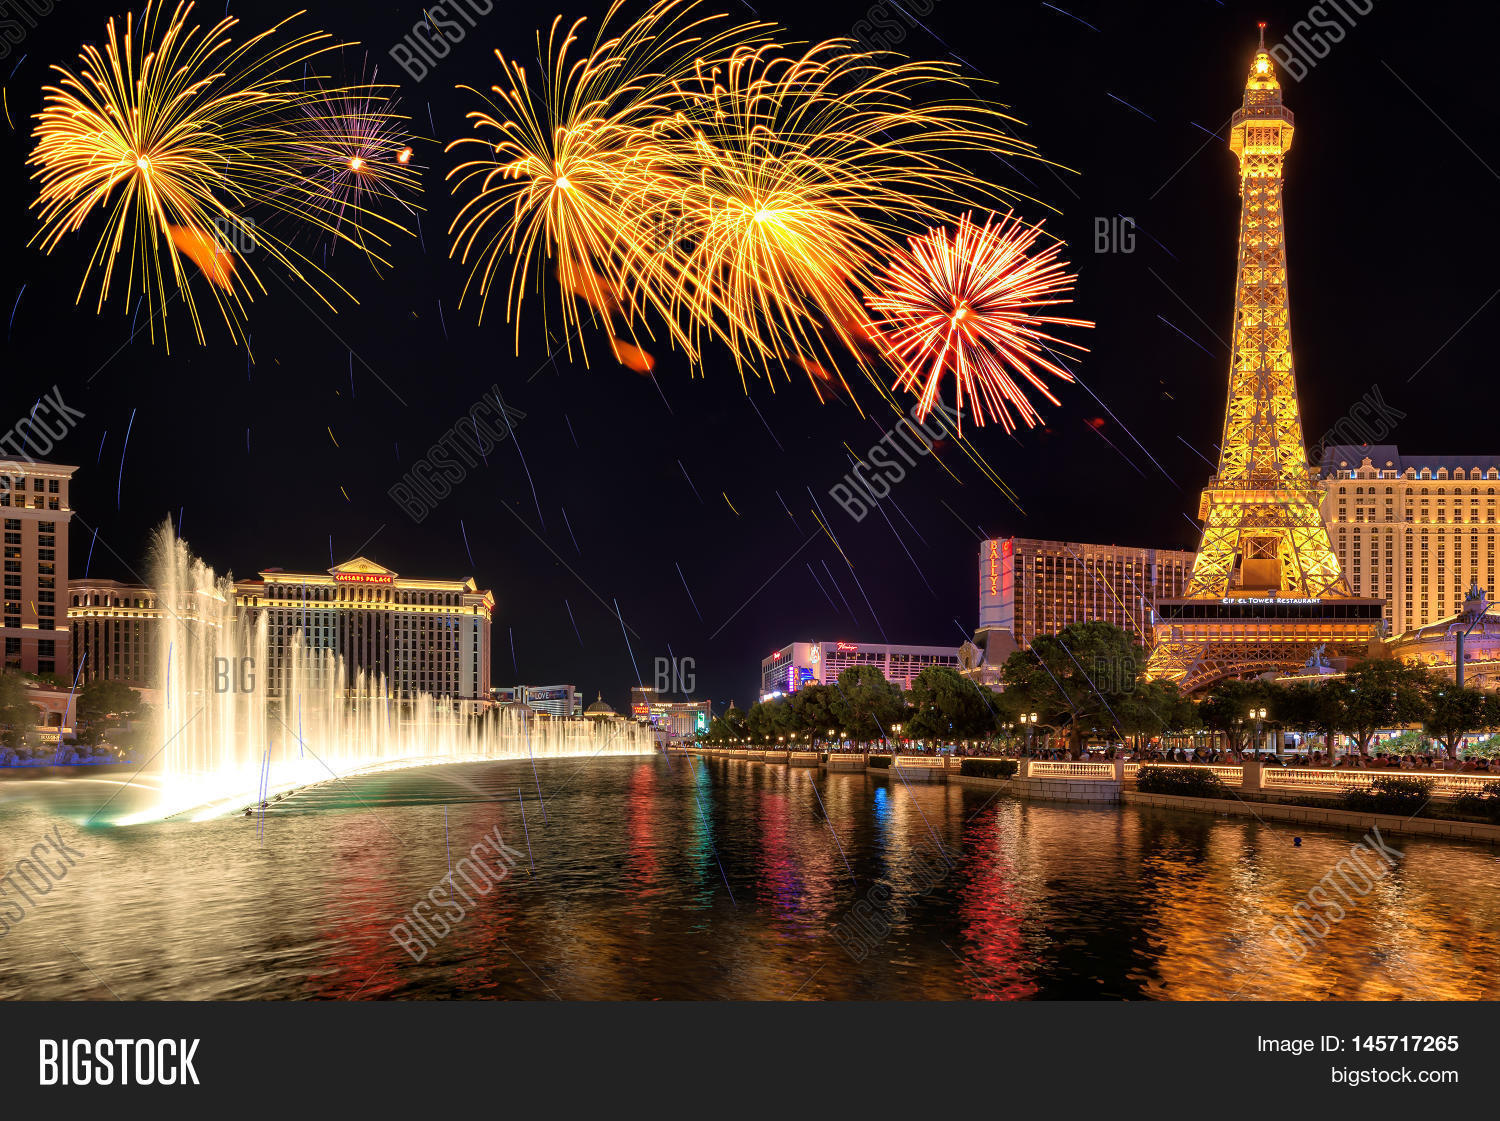 fireworks fountains image & photo (free trial) | bigstock